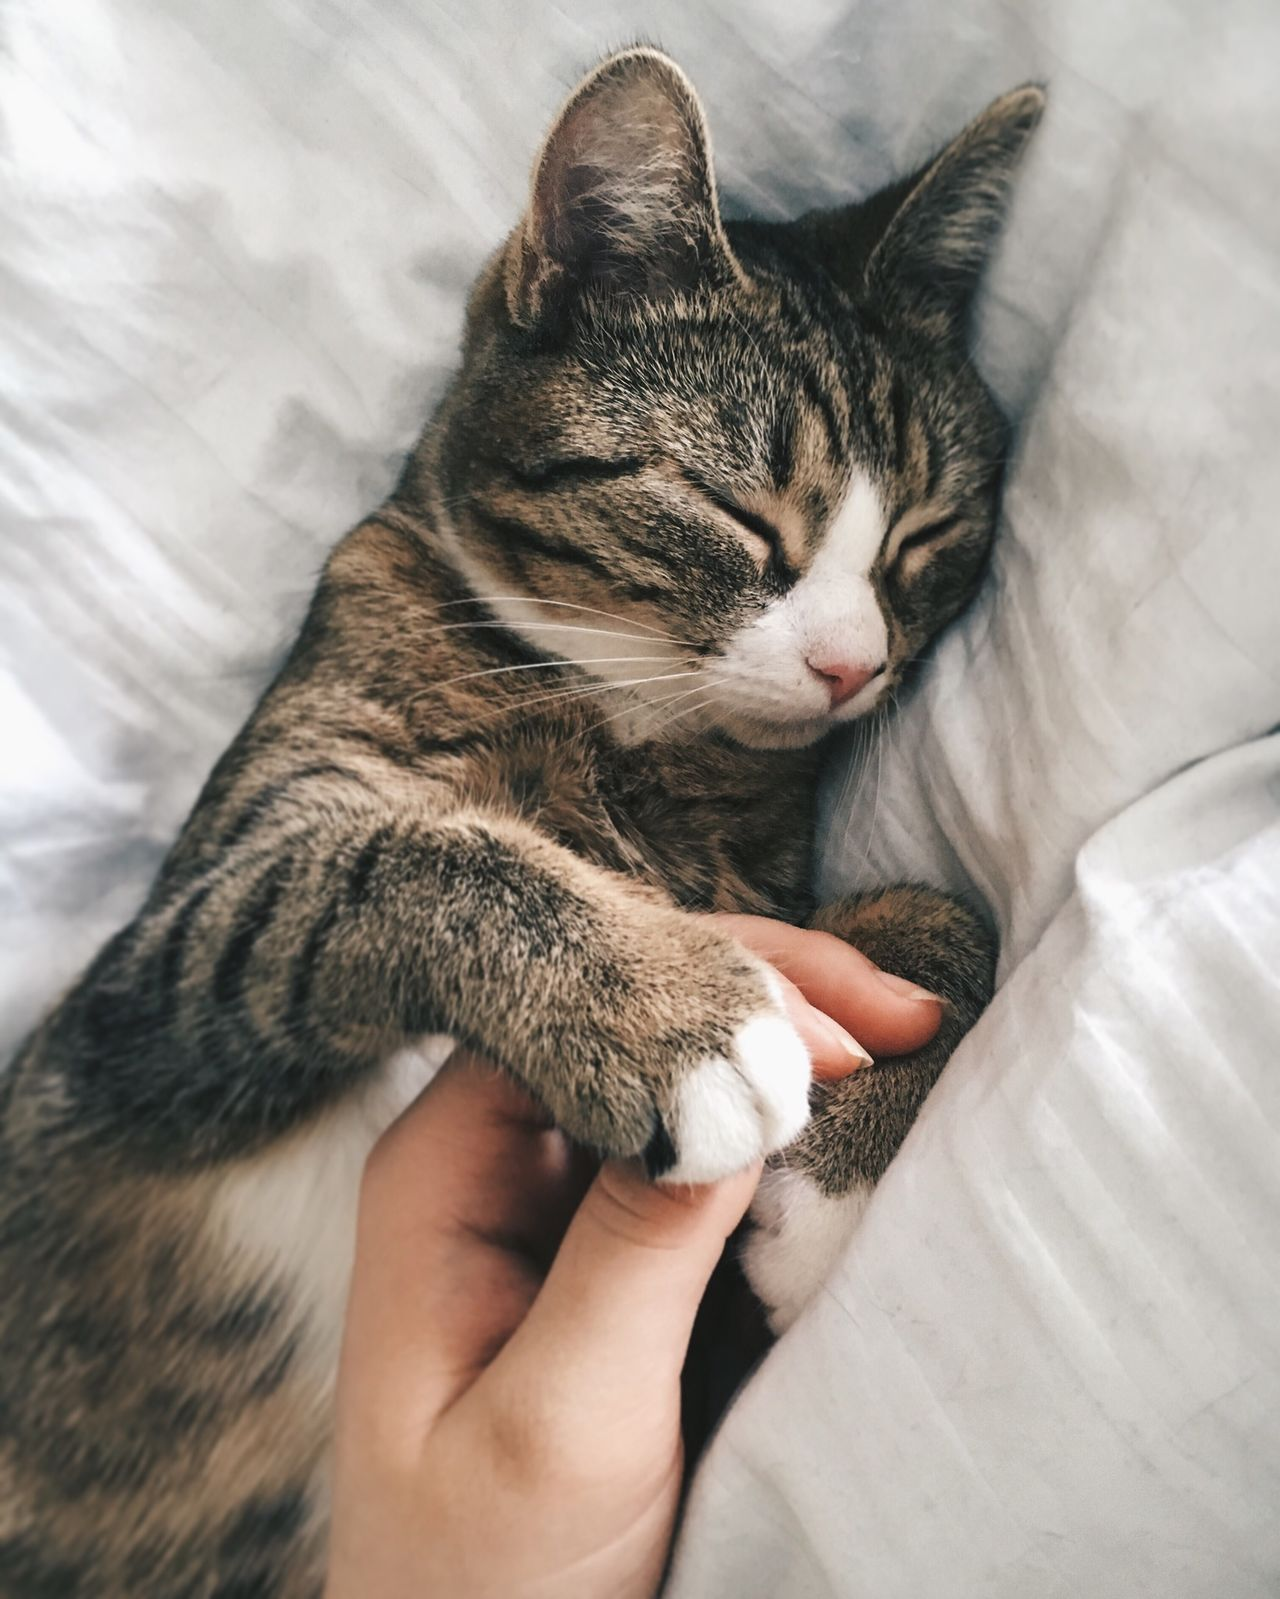 Cropped hand touching sleeping cat on bed at home